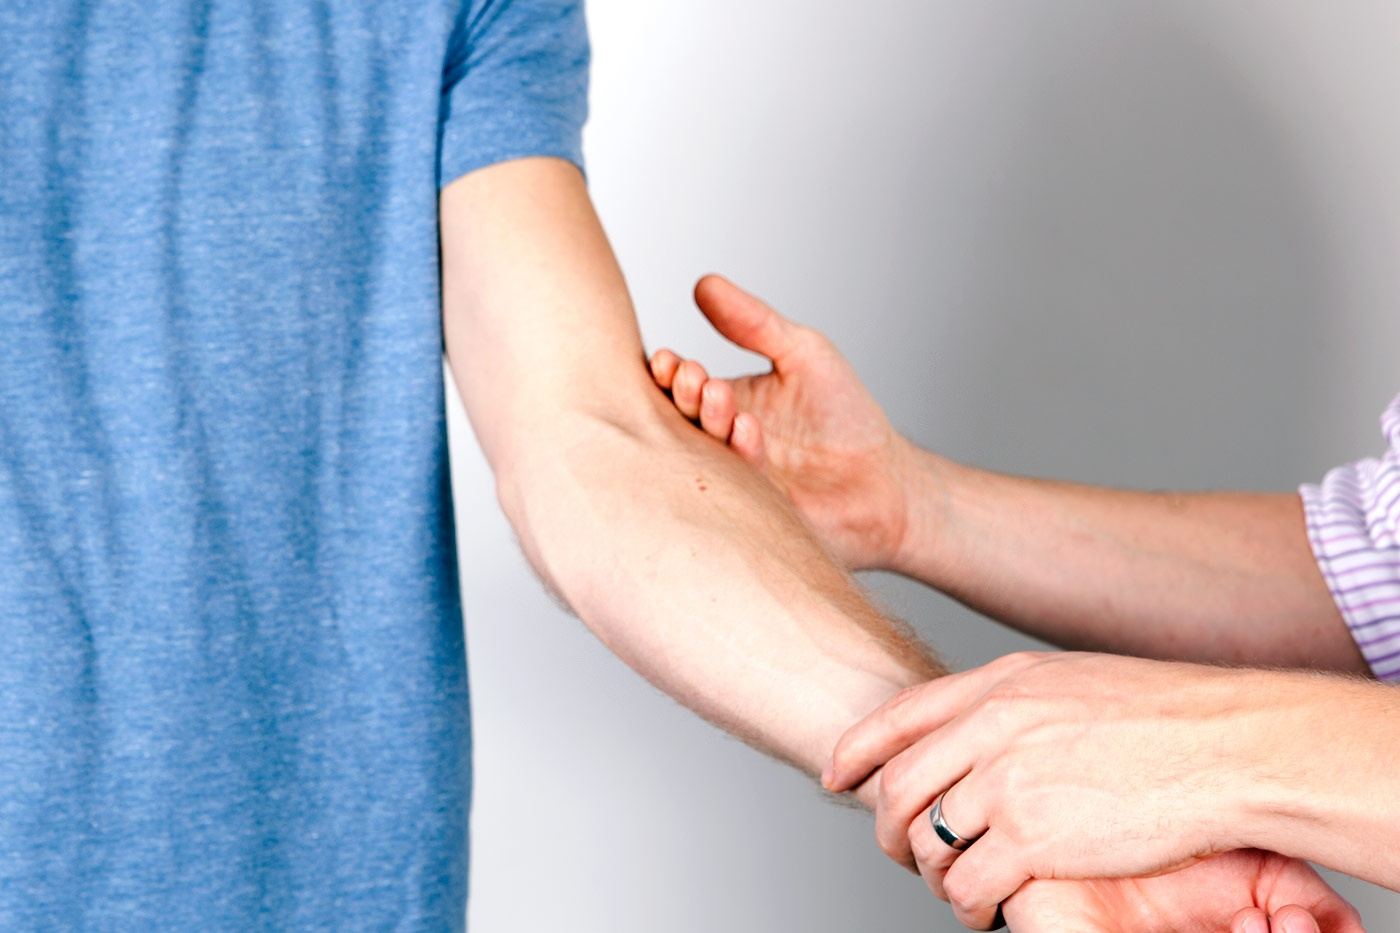 Assess the joint temperature